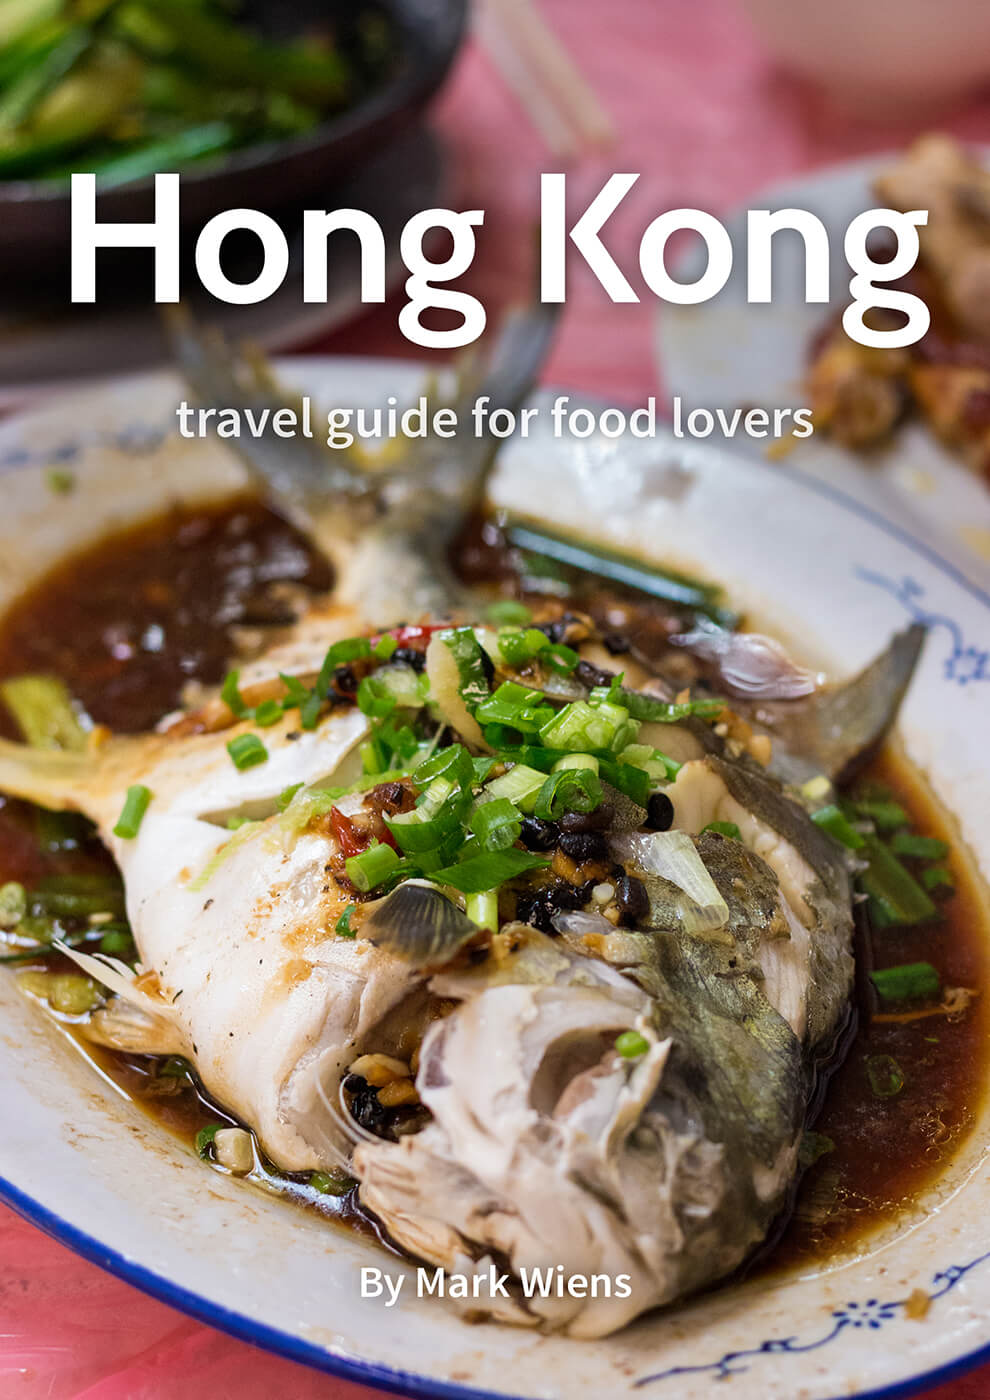 Hong kong food guide 25 must eat dishes where you can try them 1 amazon kindle forumfinder Image collections